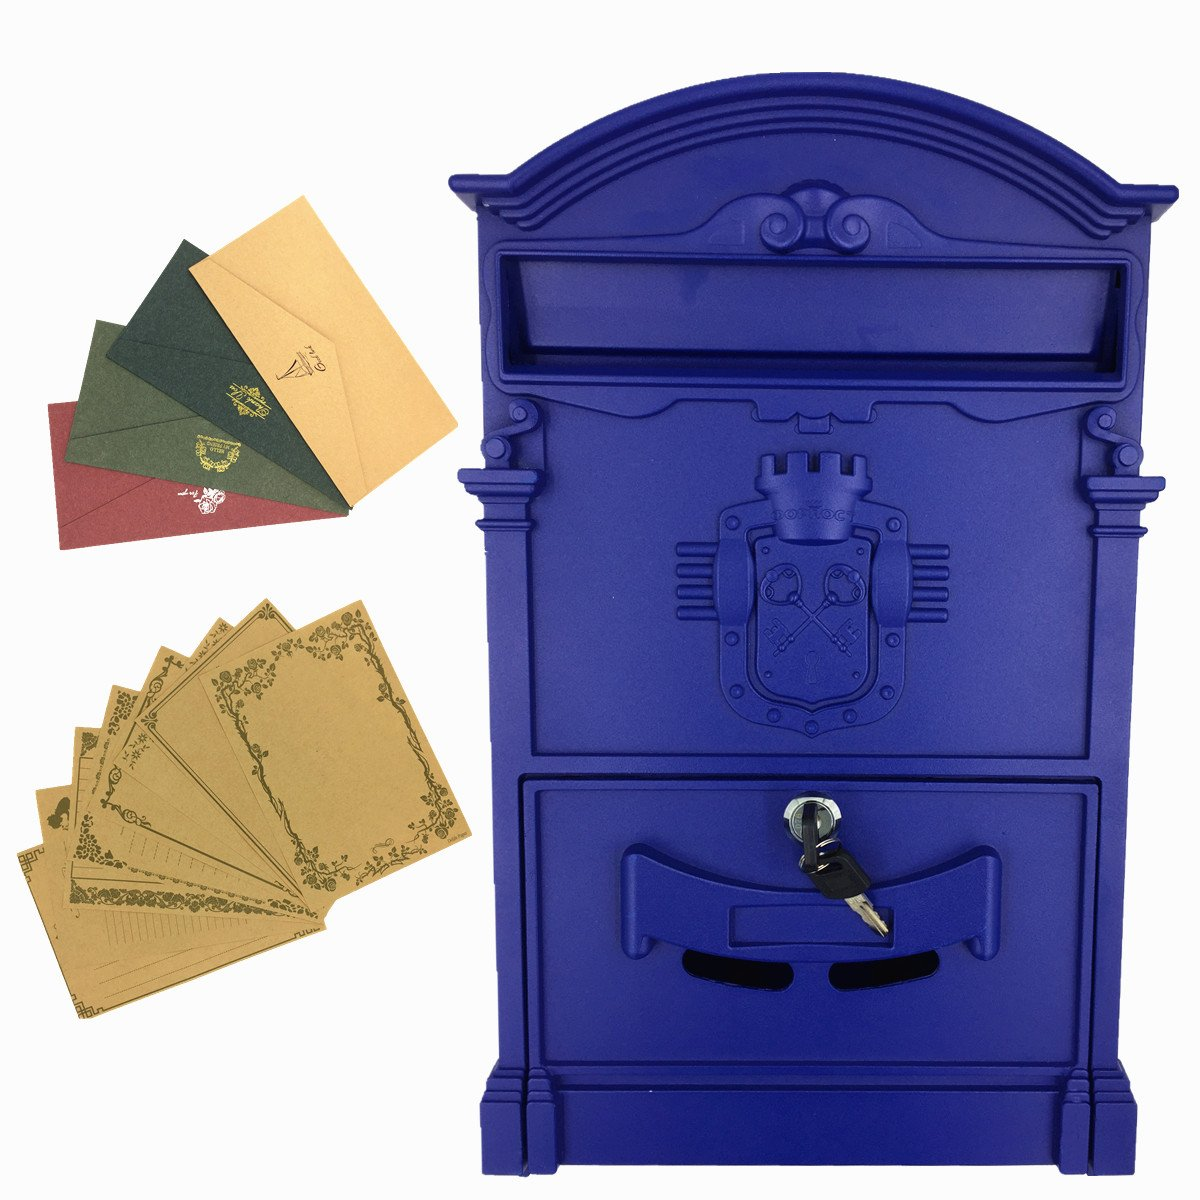 Yahead Outdoor Mailbox Retro Vintage European Aluminum Wall Mounted Mail Box Post Box Secure Letterbox Outside Mailboxes with 8pcs Retro Writing Stationery Paper and 4pcs Envelopes by Yahead